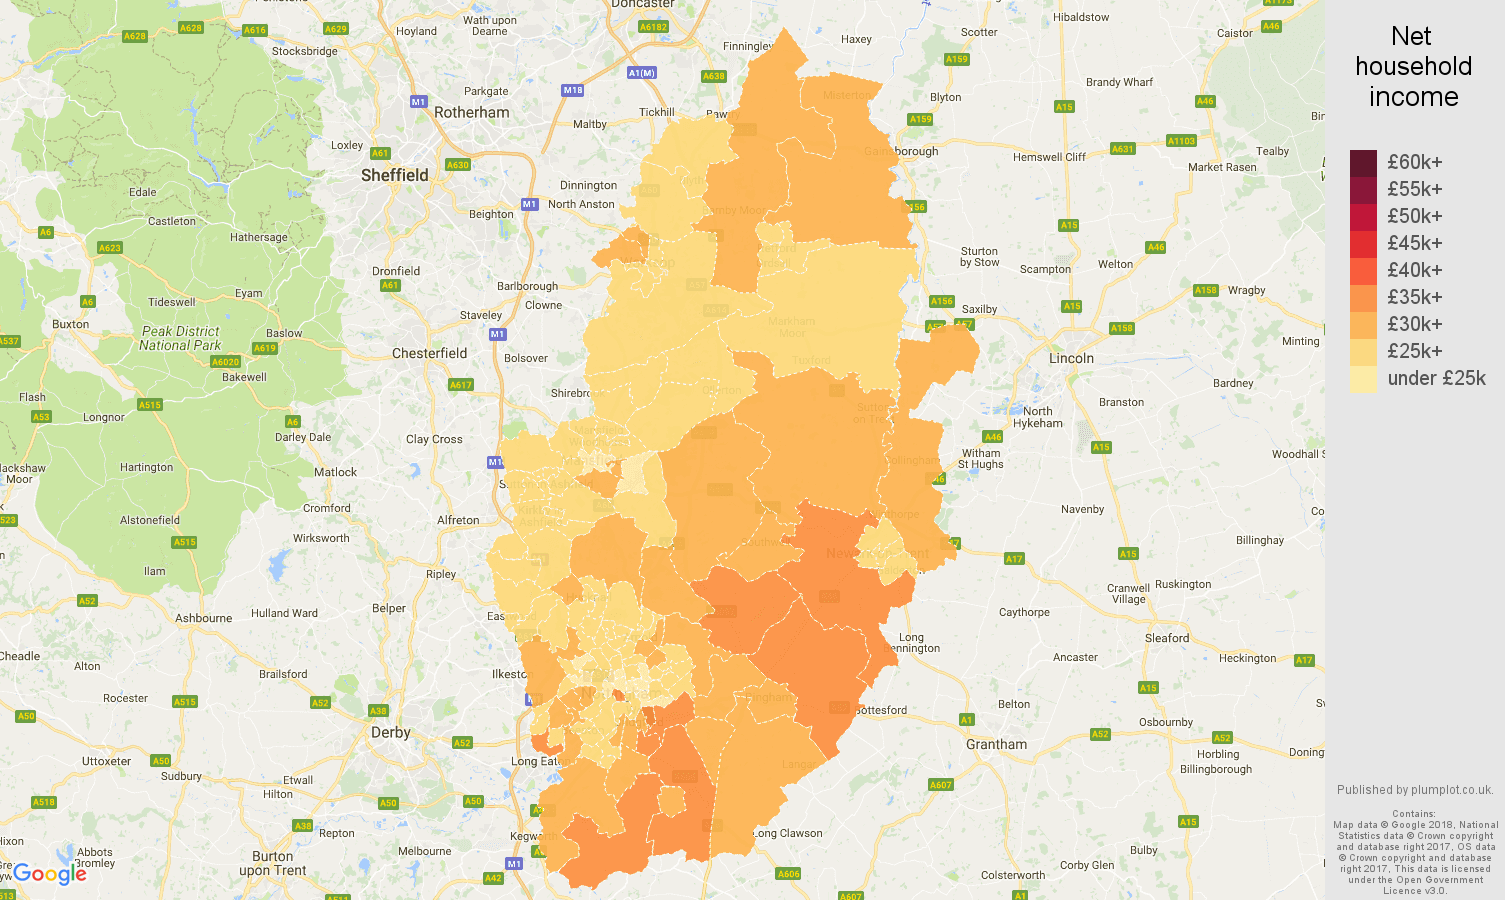 Nottinghamshire net household income map